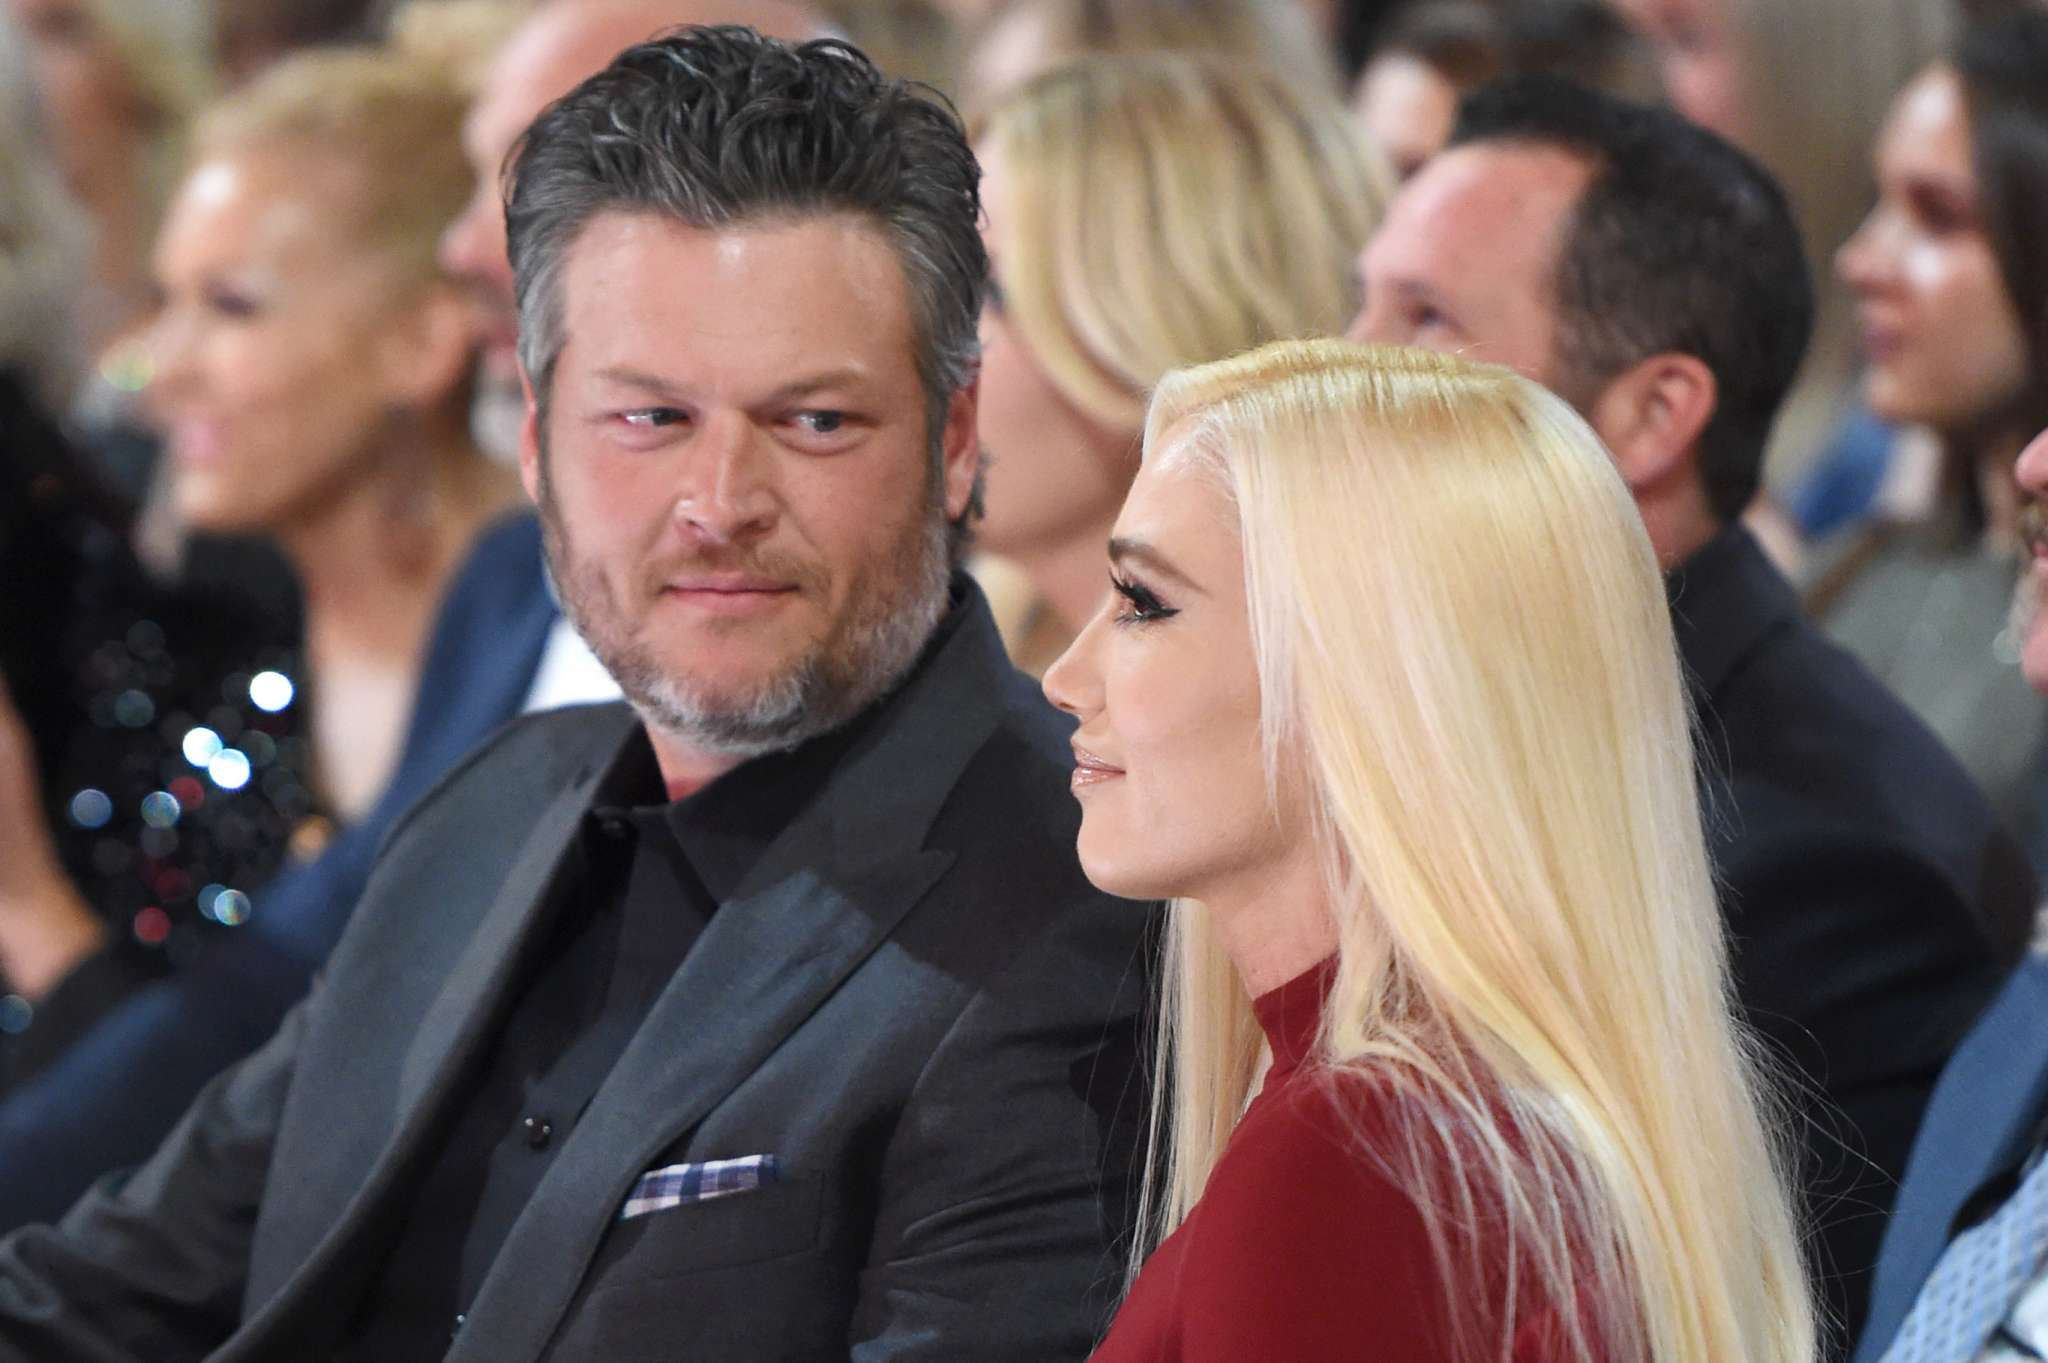 blake-shelton-is-beyond-grateful-gwen-stefani-chose-to-come-cheer-for-him-at-the-acm-awards